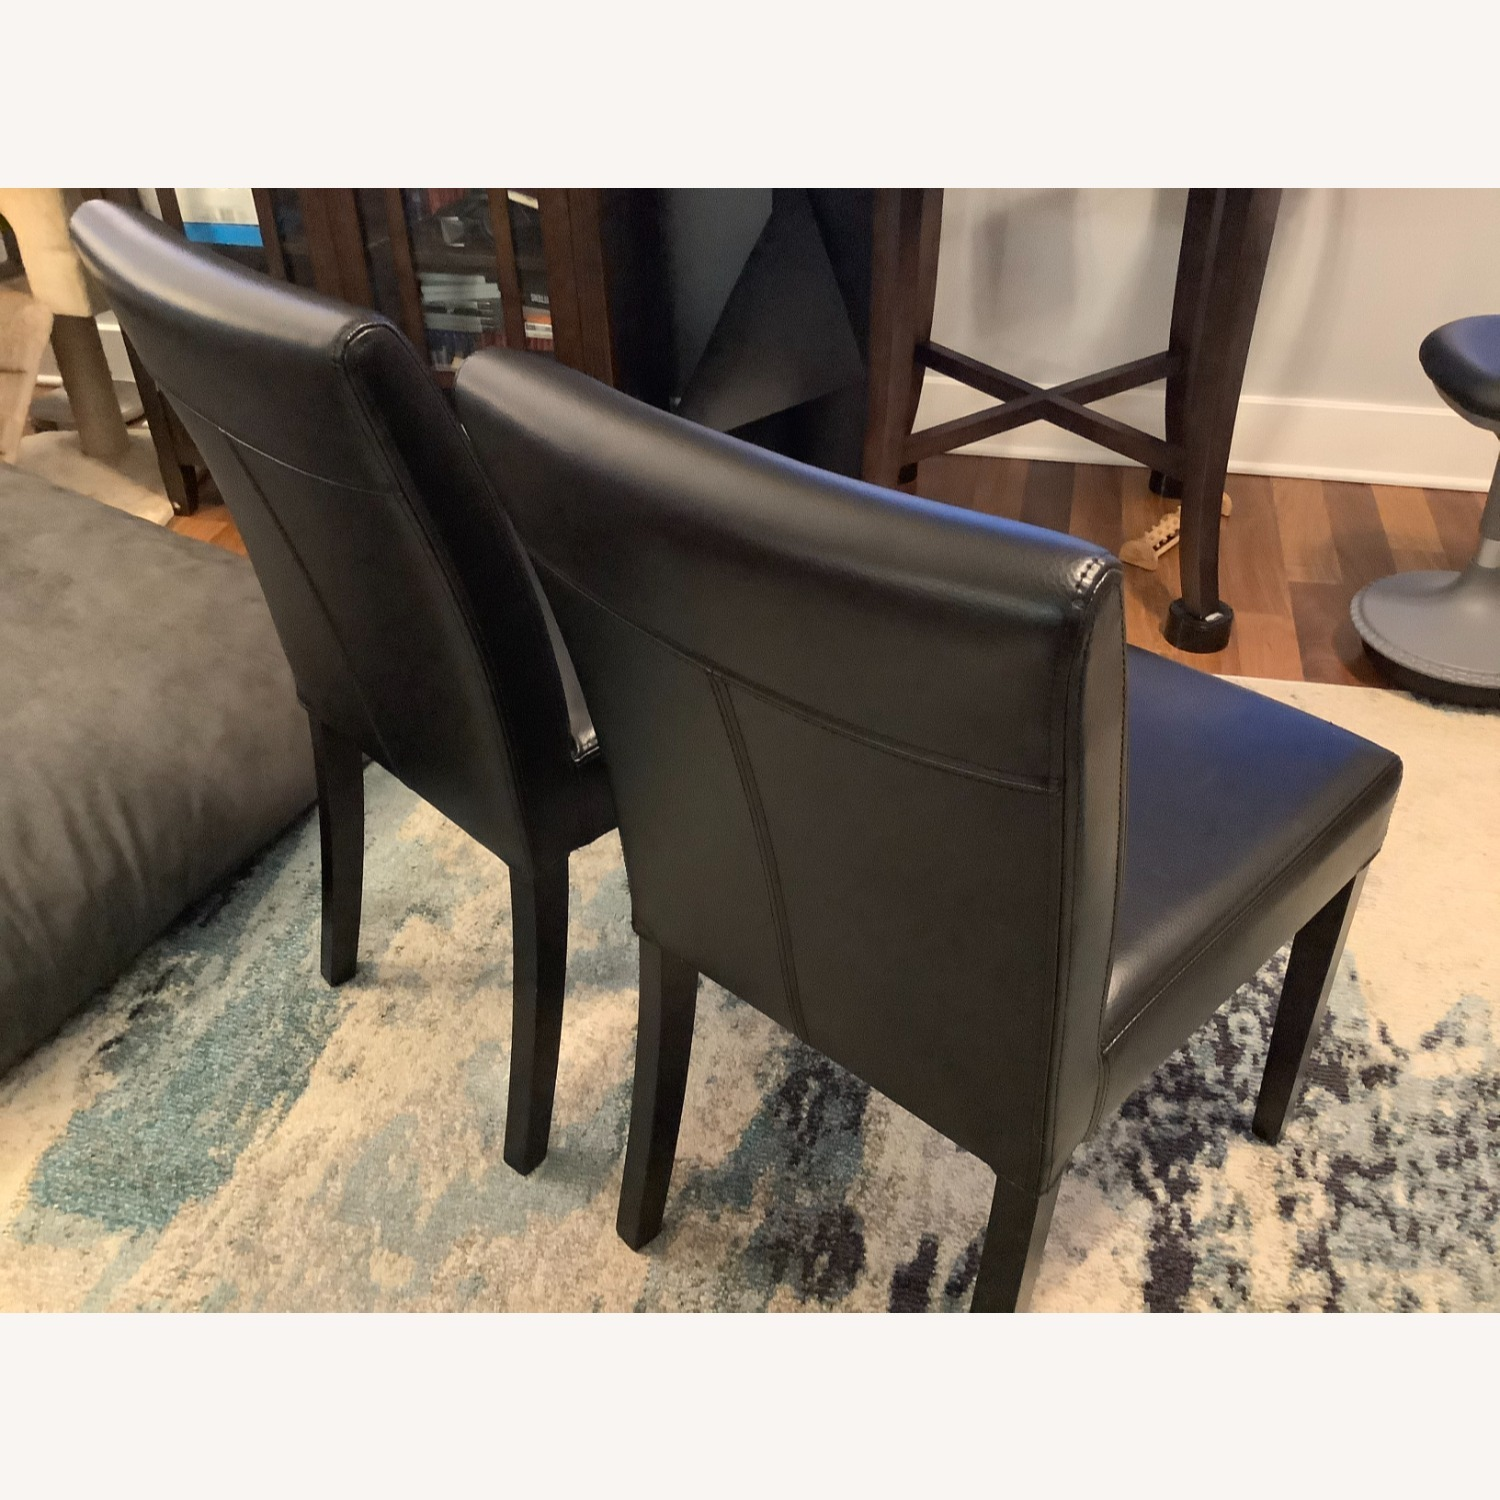 Crate & Barrel Lowe Leather Dining Chair - image-5